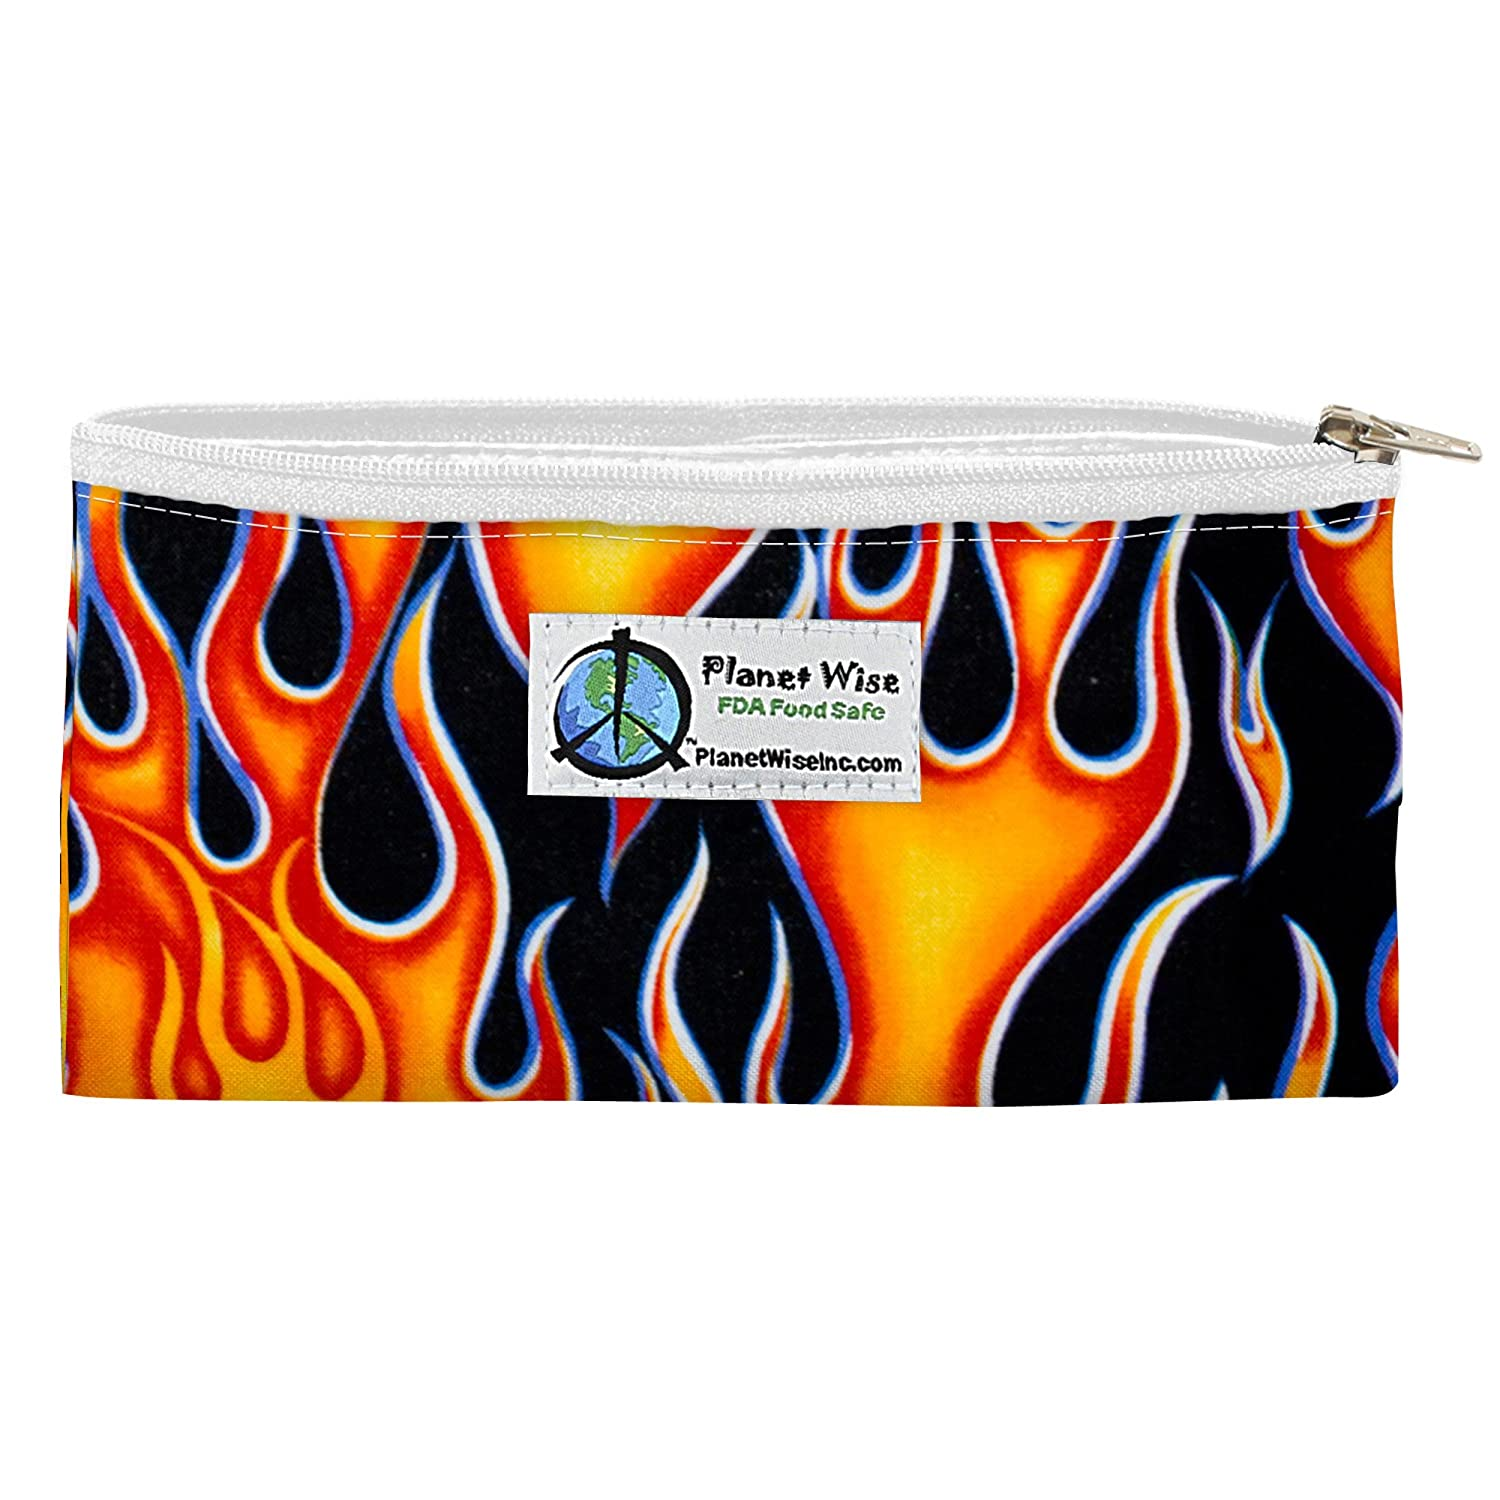 Planet Wise Reusable Zipper Sandwich and Snack Bags, Snack, Flame